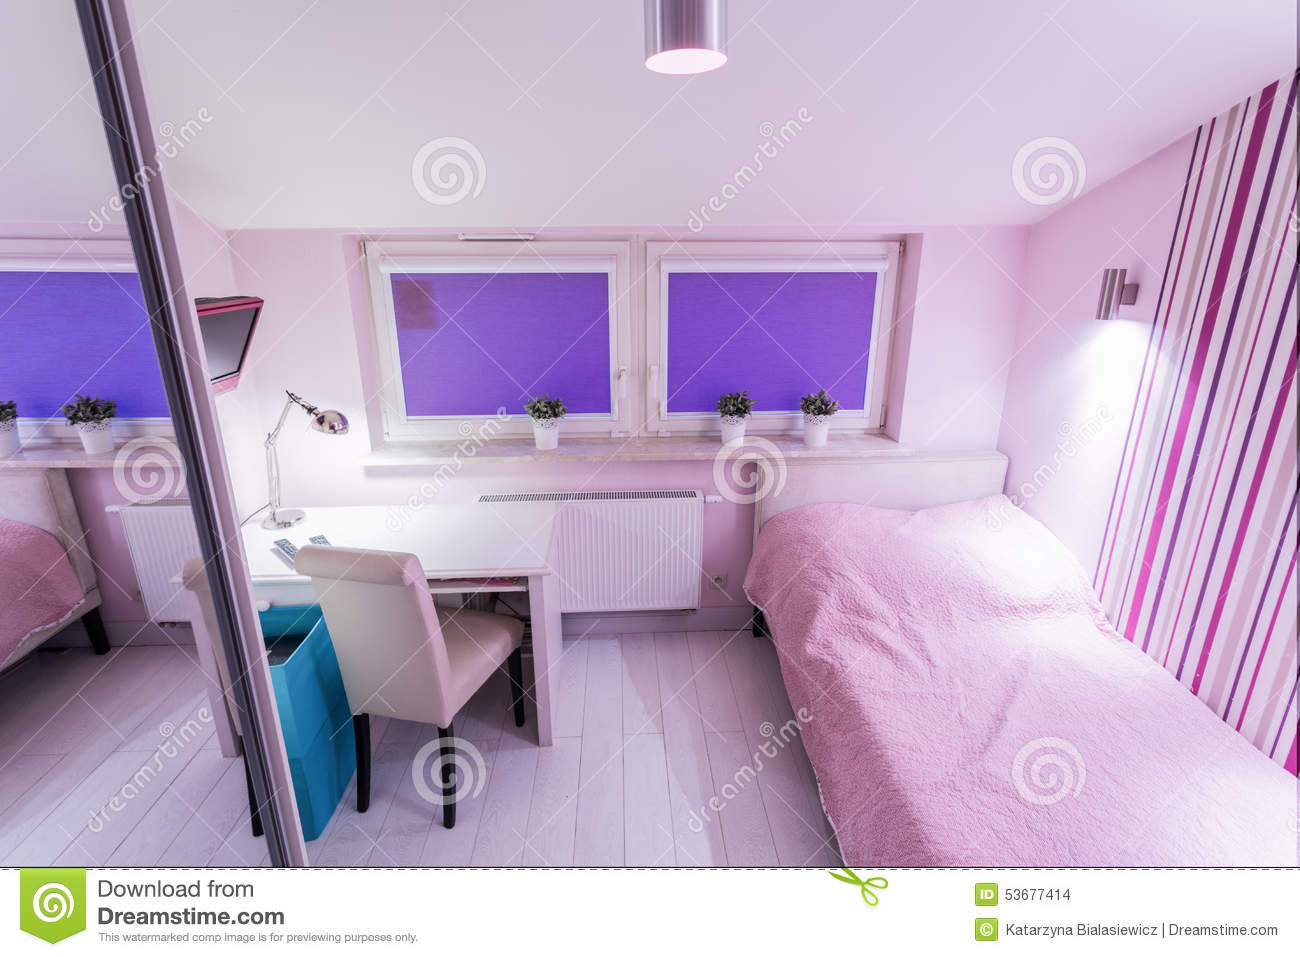 images of pink bedrooms small bedroom royalty free stock photography 15632